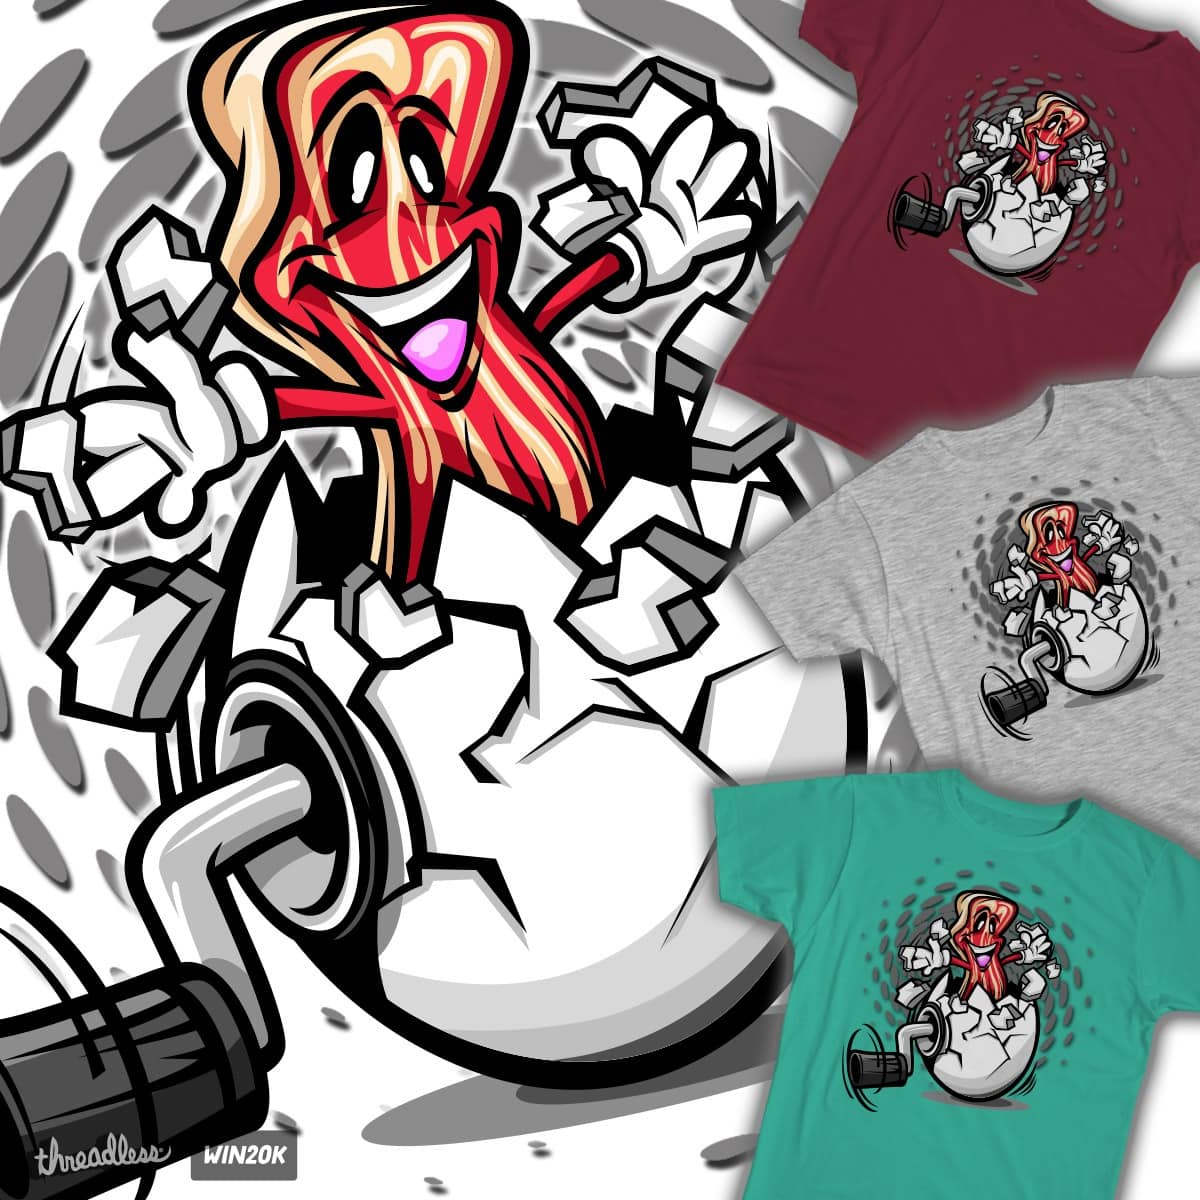 Pop'n Bacon! by Funky Turtle on Threadless